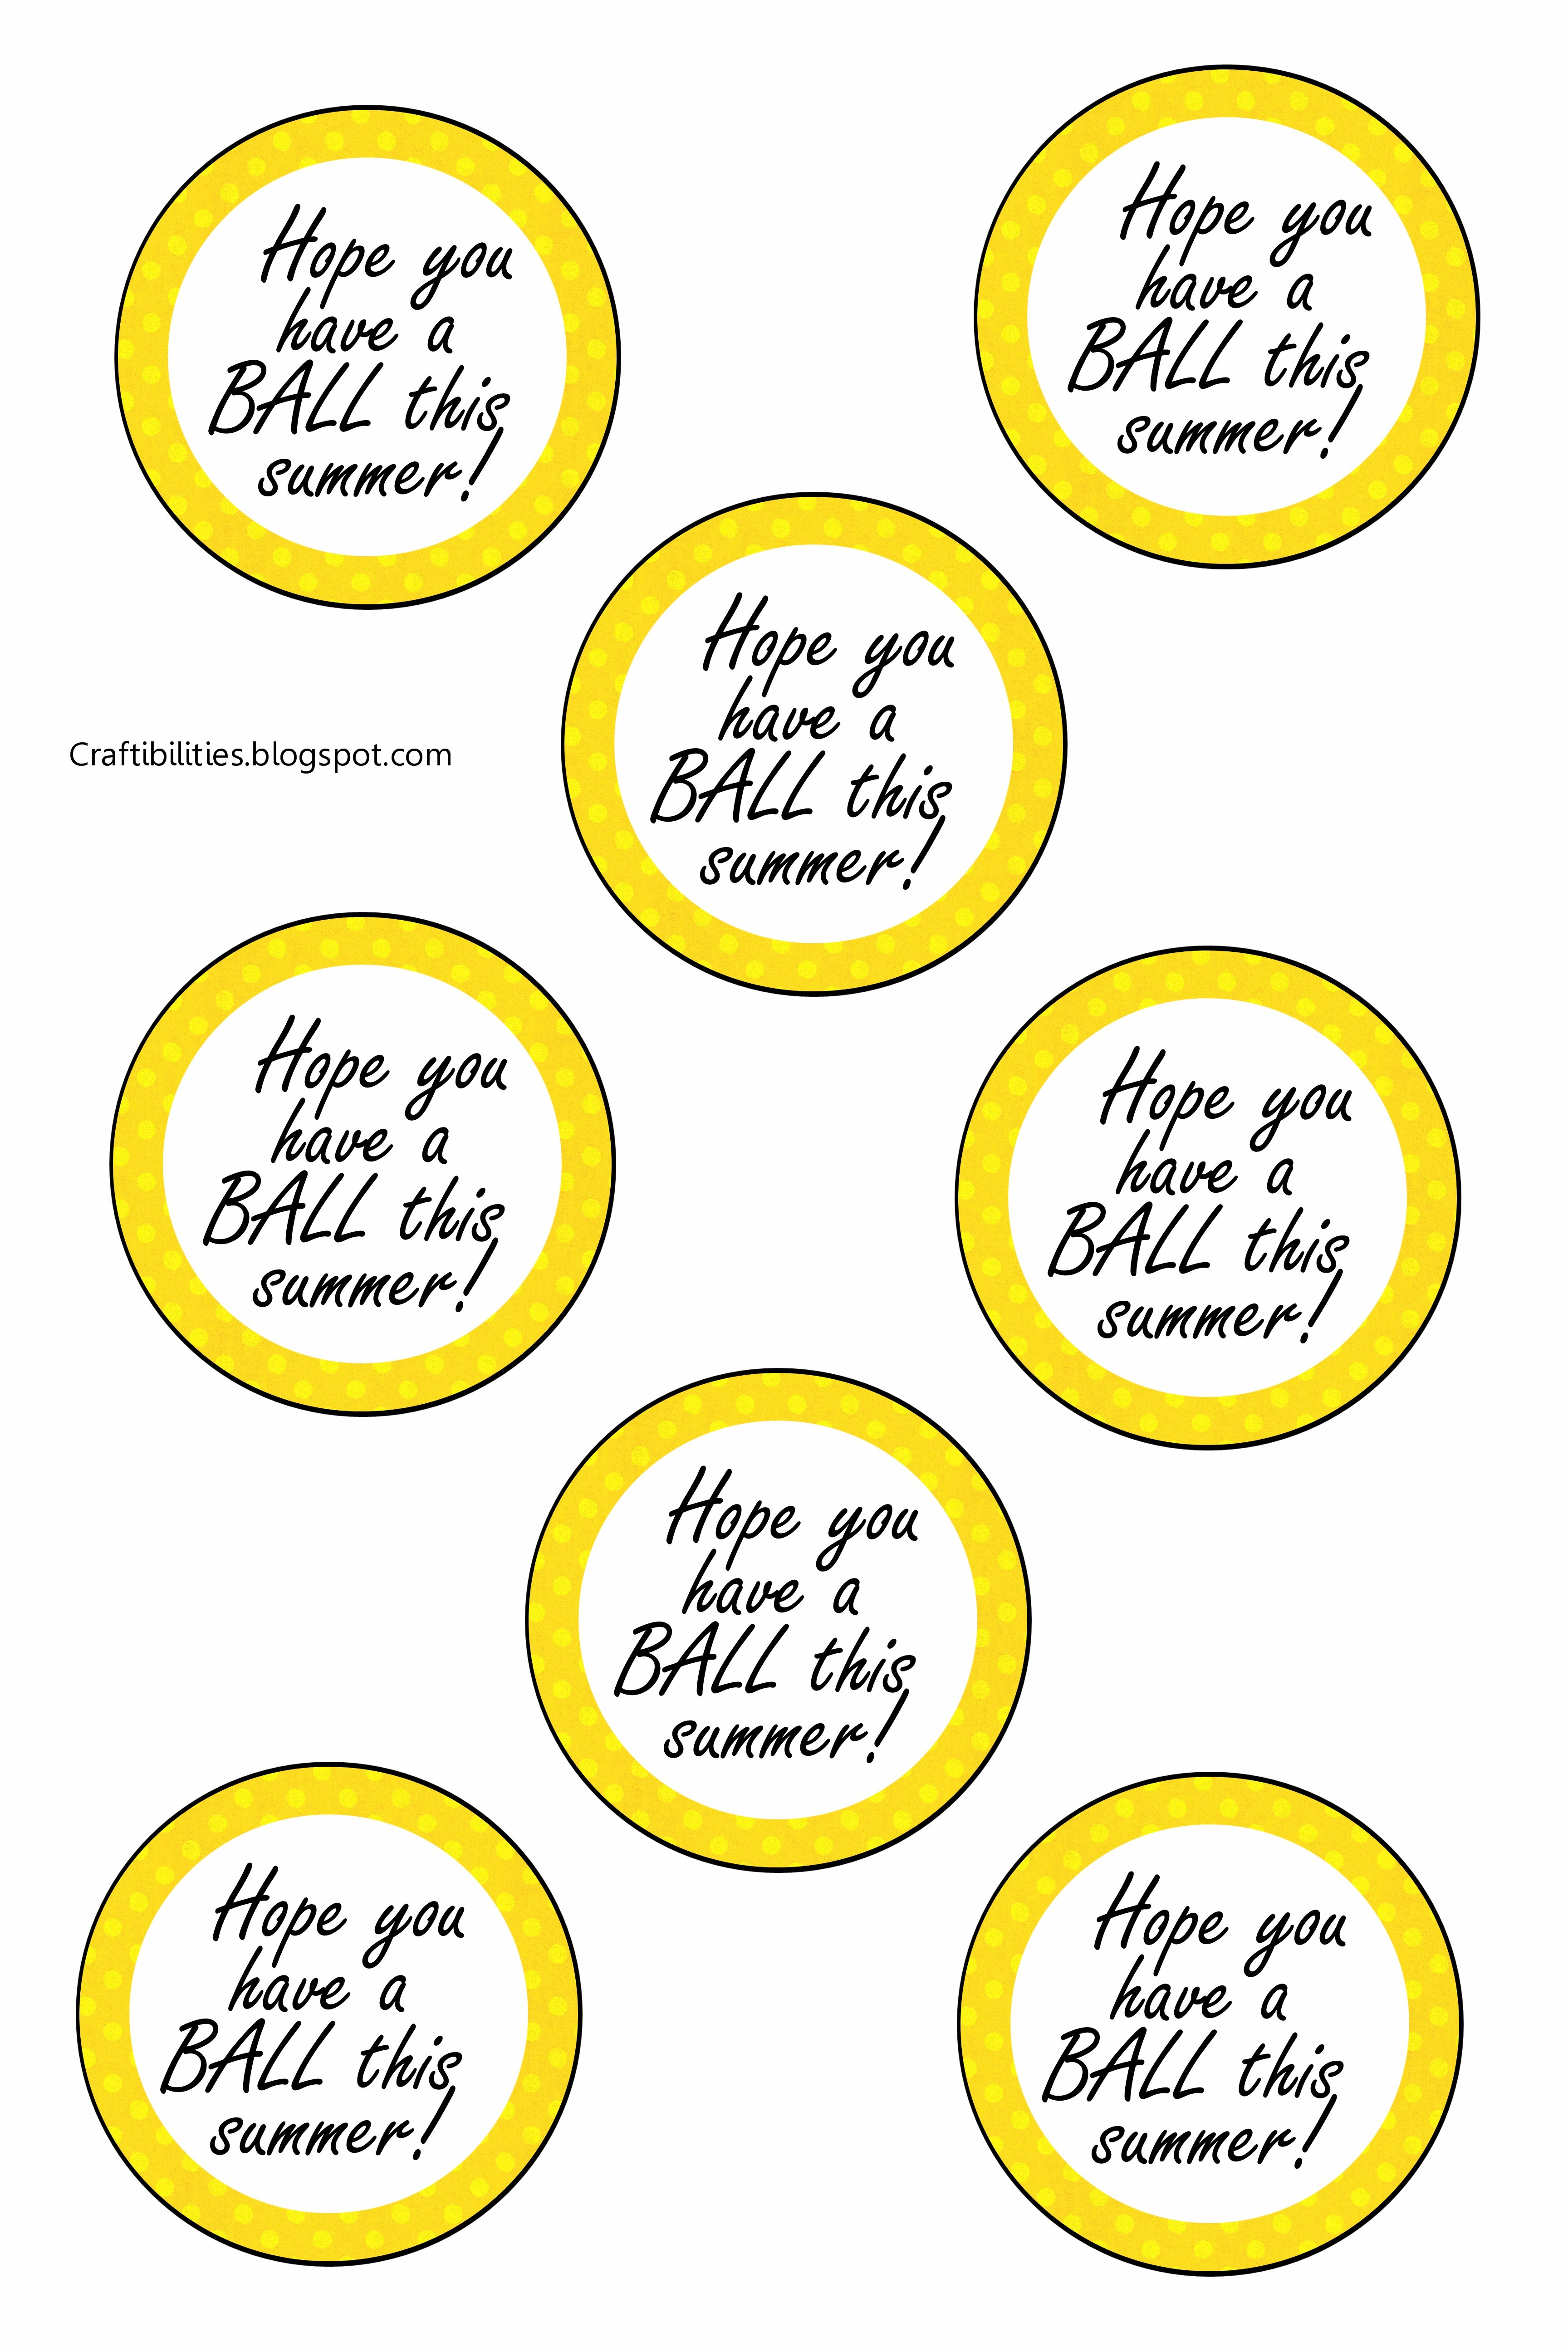 image regarding Have a Ball This Summer Printable named Conclusion OF THE Yr cl reward! Incorporate a BALL this summer time! Absolutely free